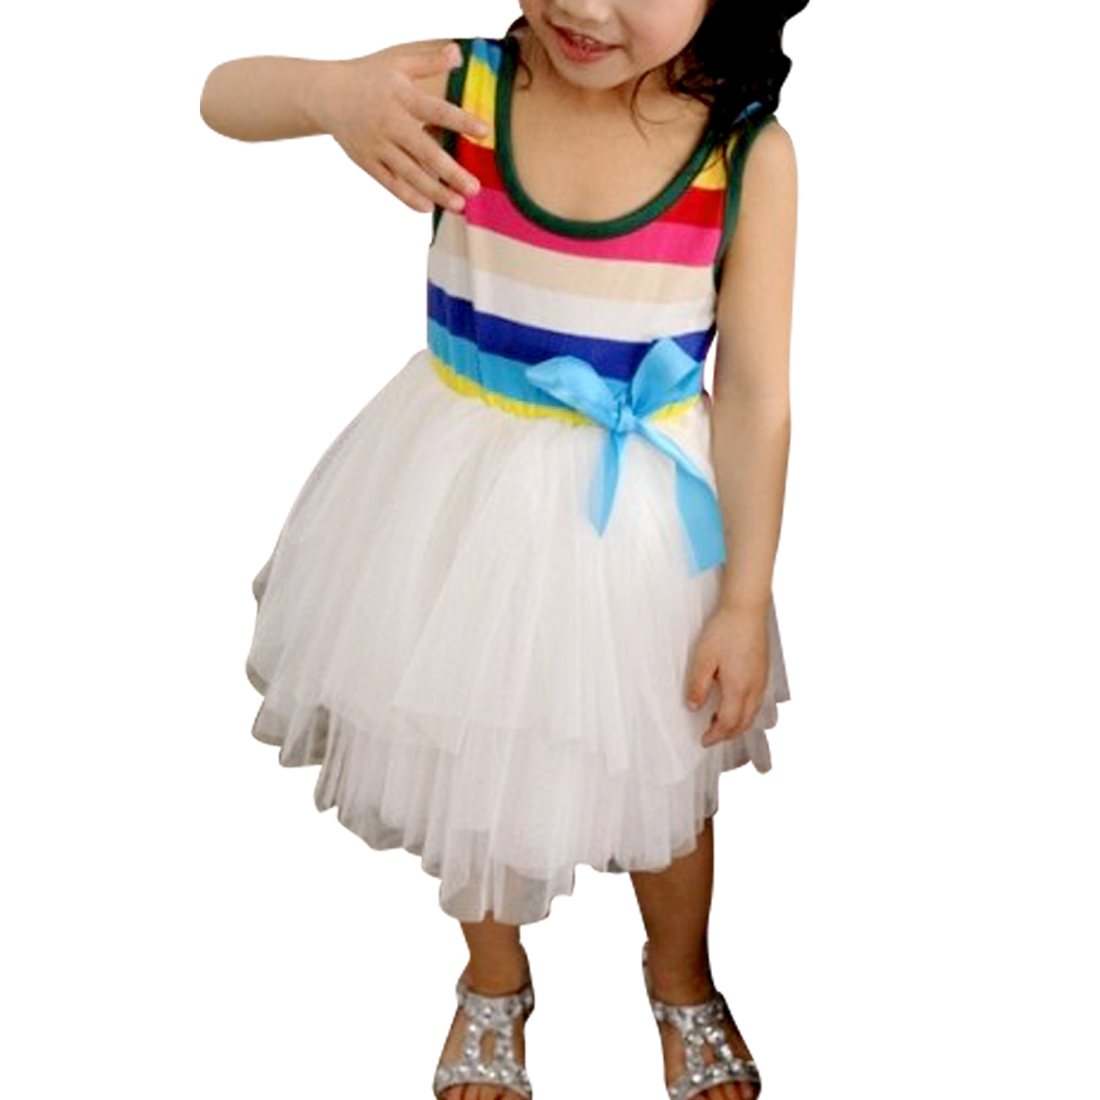 Childs Sleeveless Stretchy Waist Multicolor Dress 4T